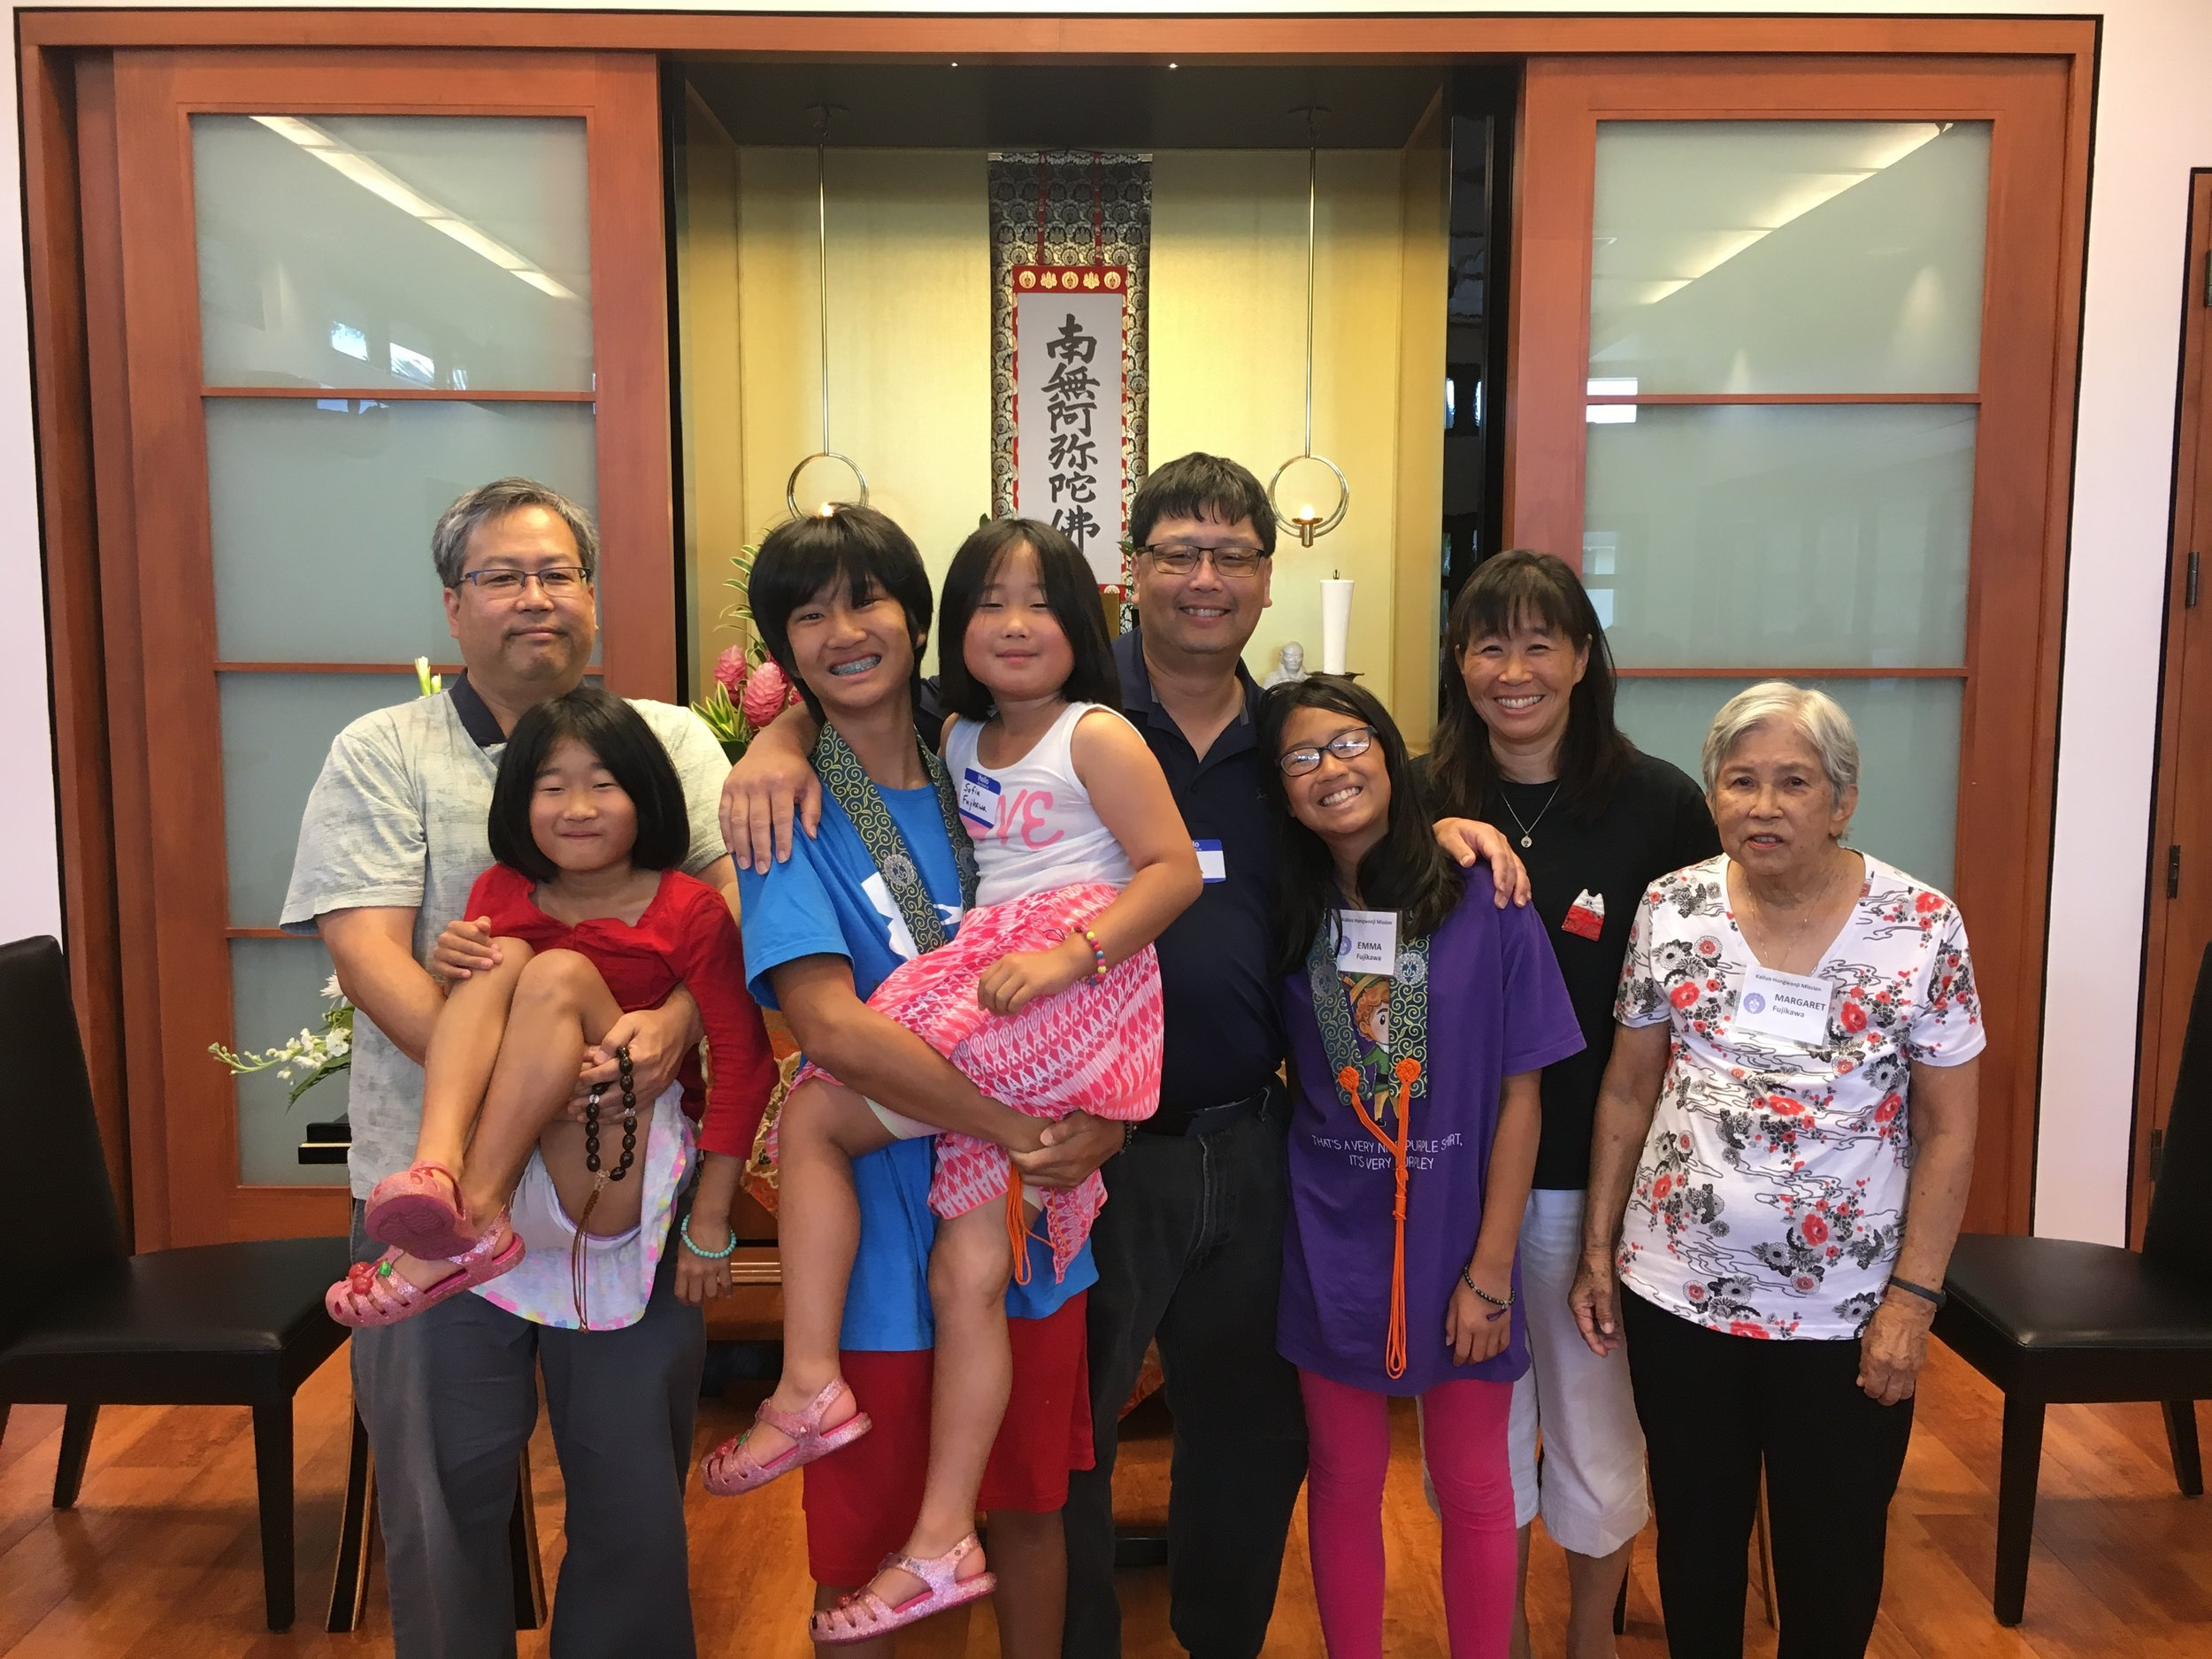 Our visitors today included Reynold Fujikawa and his daughters, who are visiting from California, along with his brother Carl.